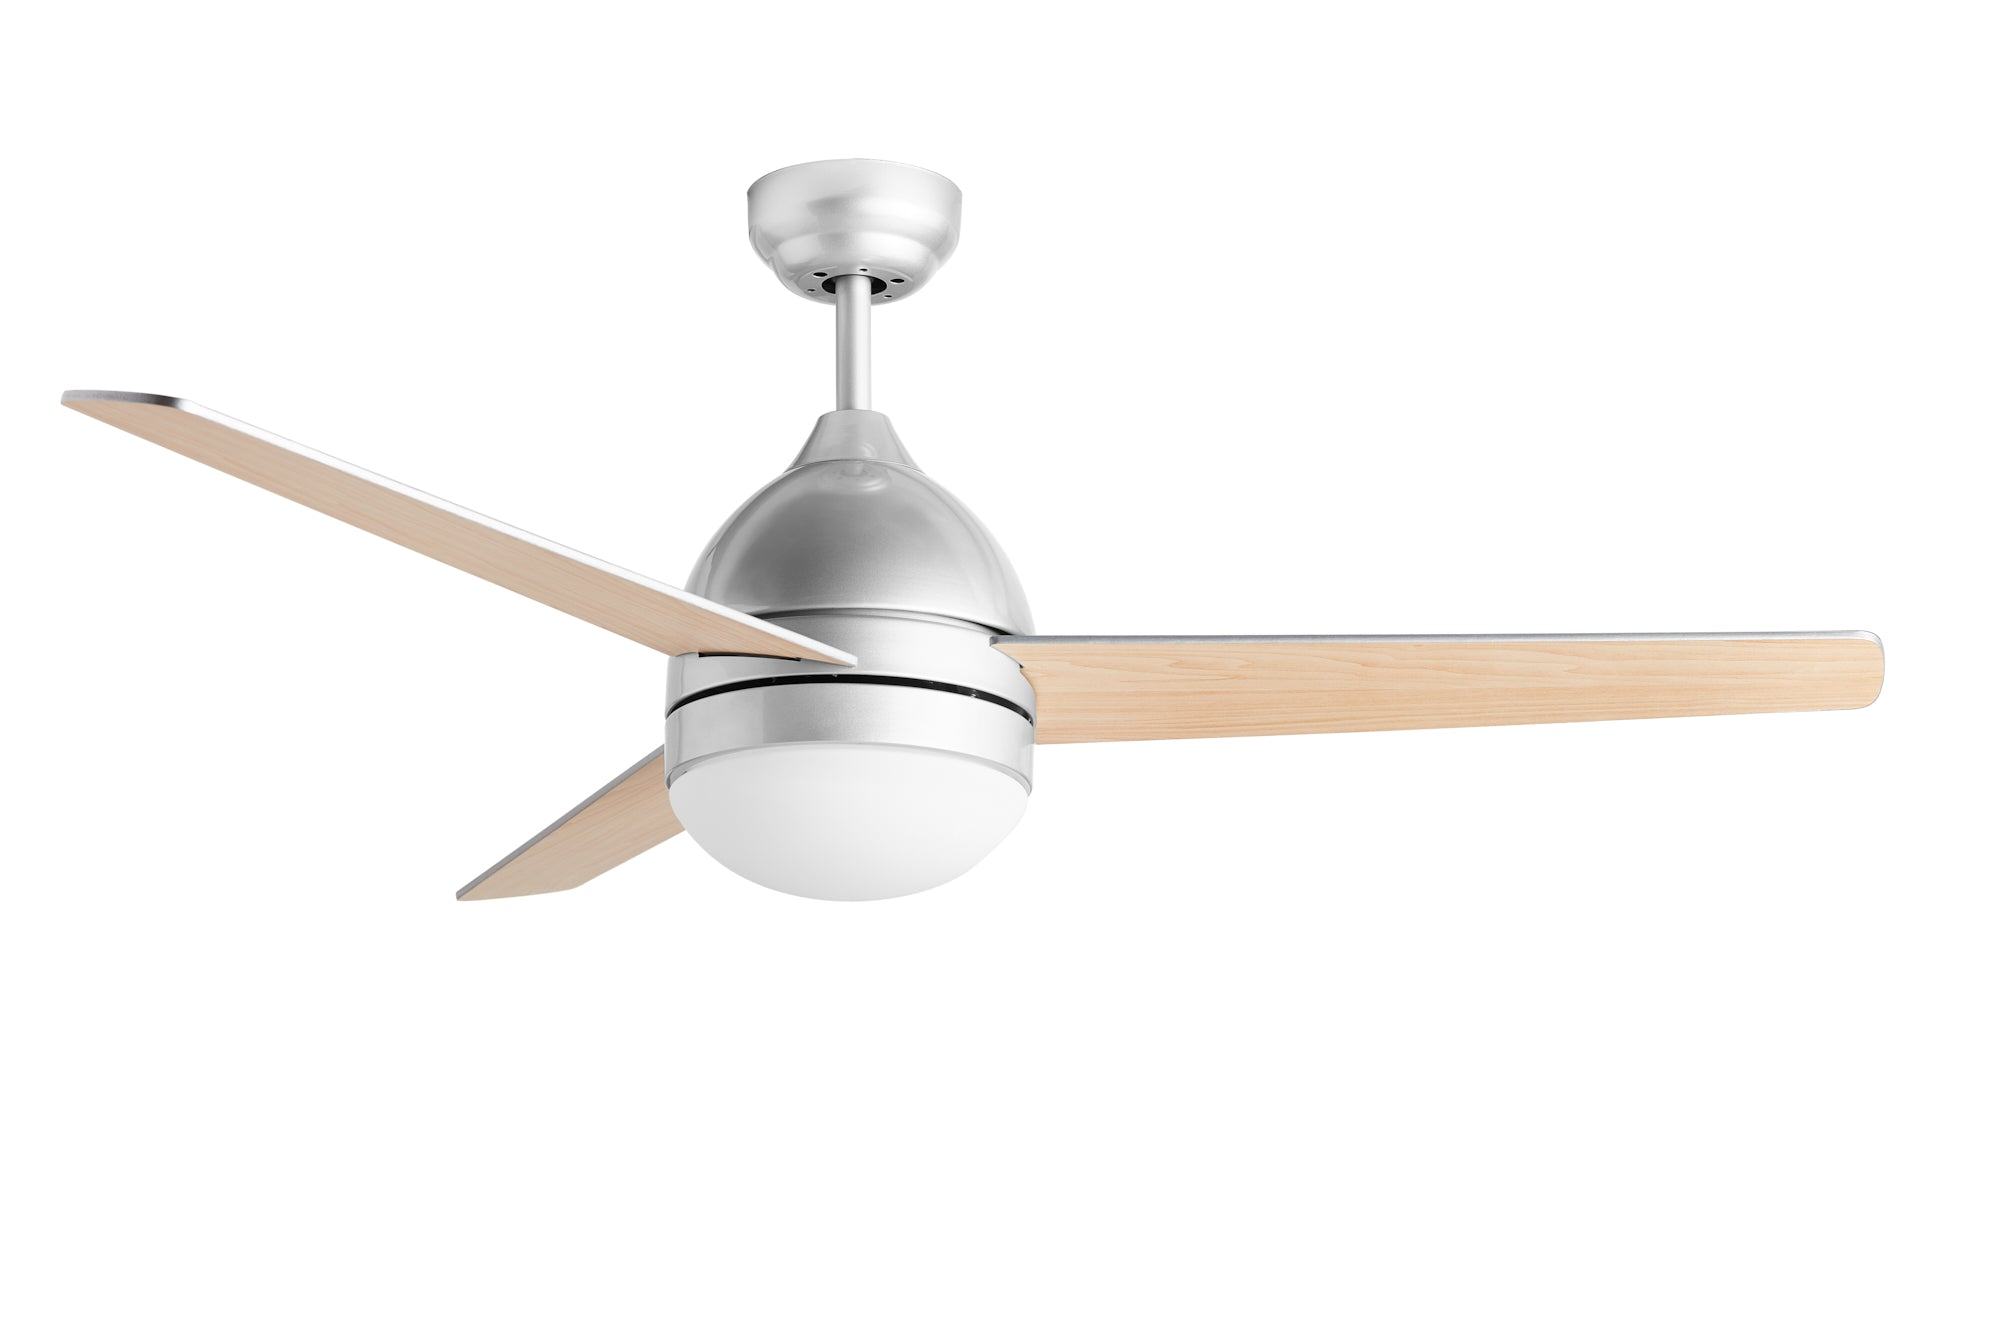 Hauslane CF2000 48 inch Modern Ceiling Fan in Sliver Finish with Quiet Motor - Huaslane Chef Range Hoods